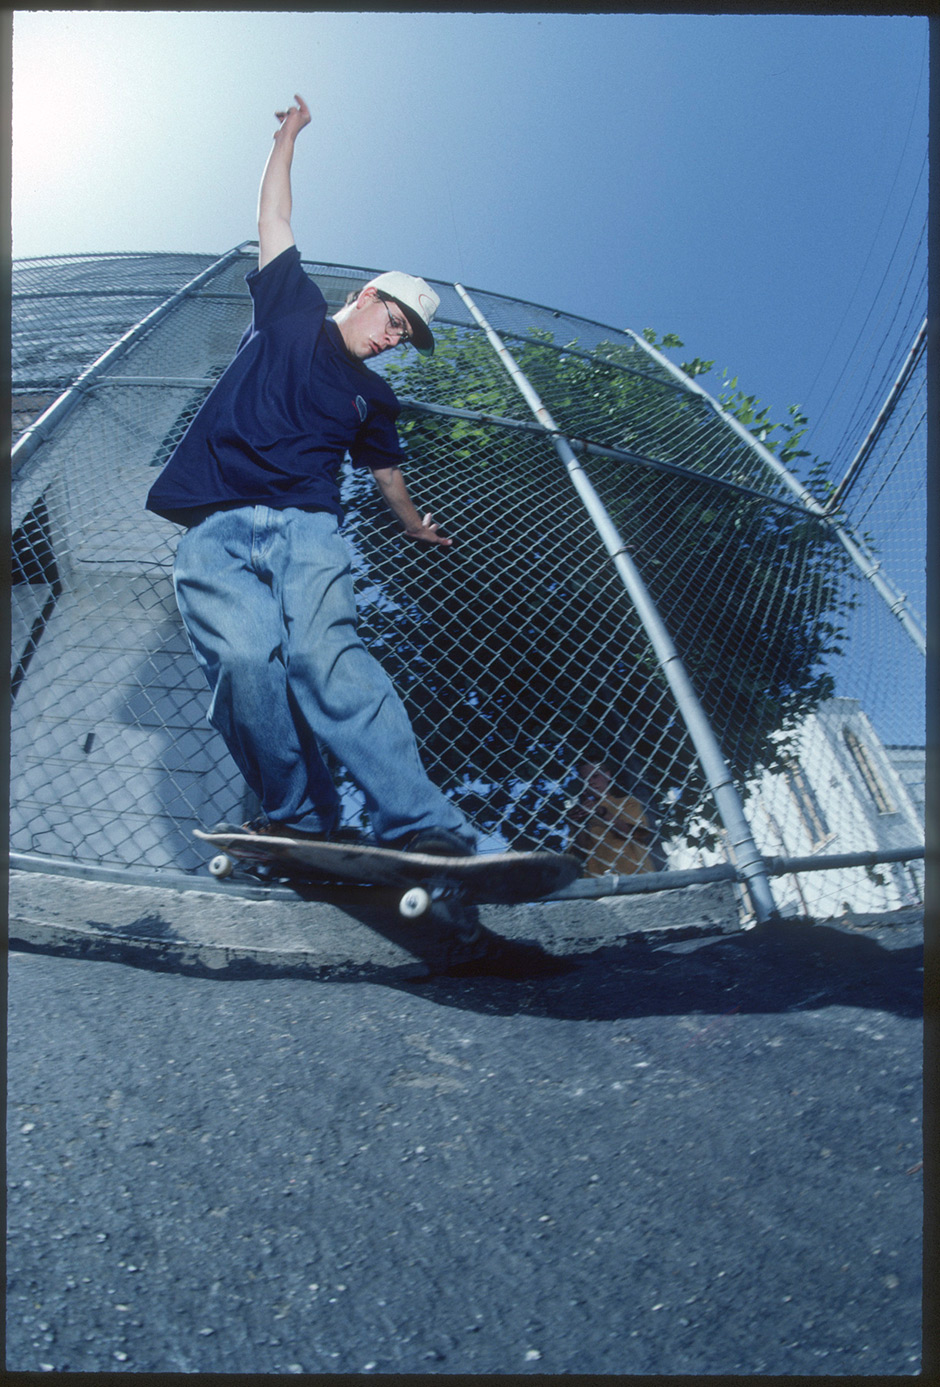 No discussion on including this Justin Girard back smith from 1991. Photo: Tobin Yelland. Inset below - Fogtown No Ploys No Toys ad